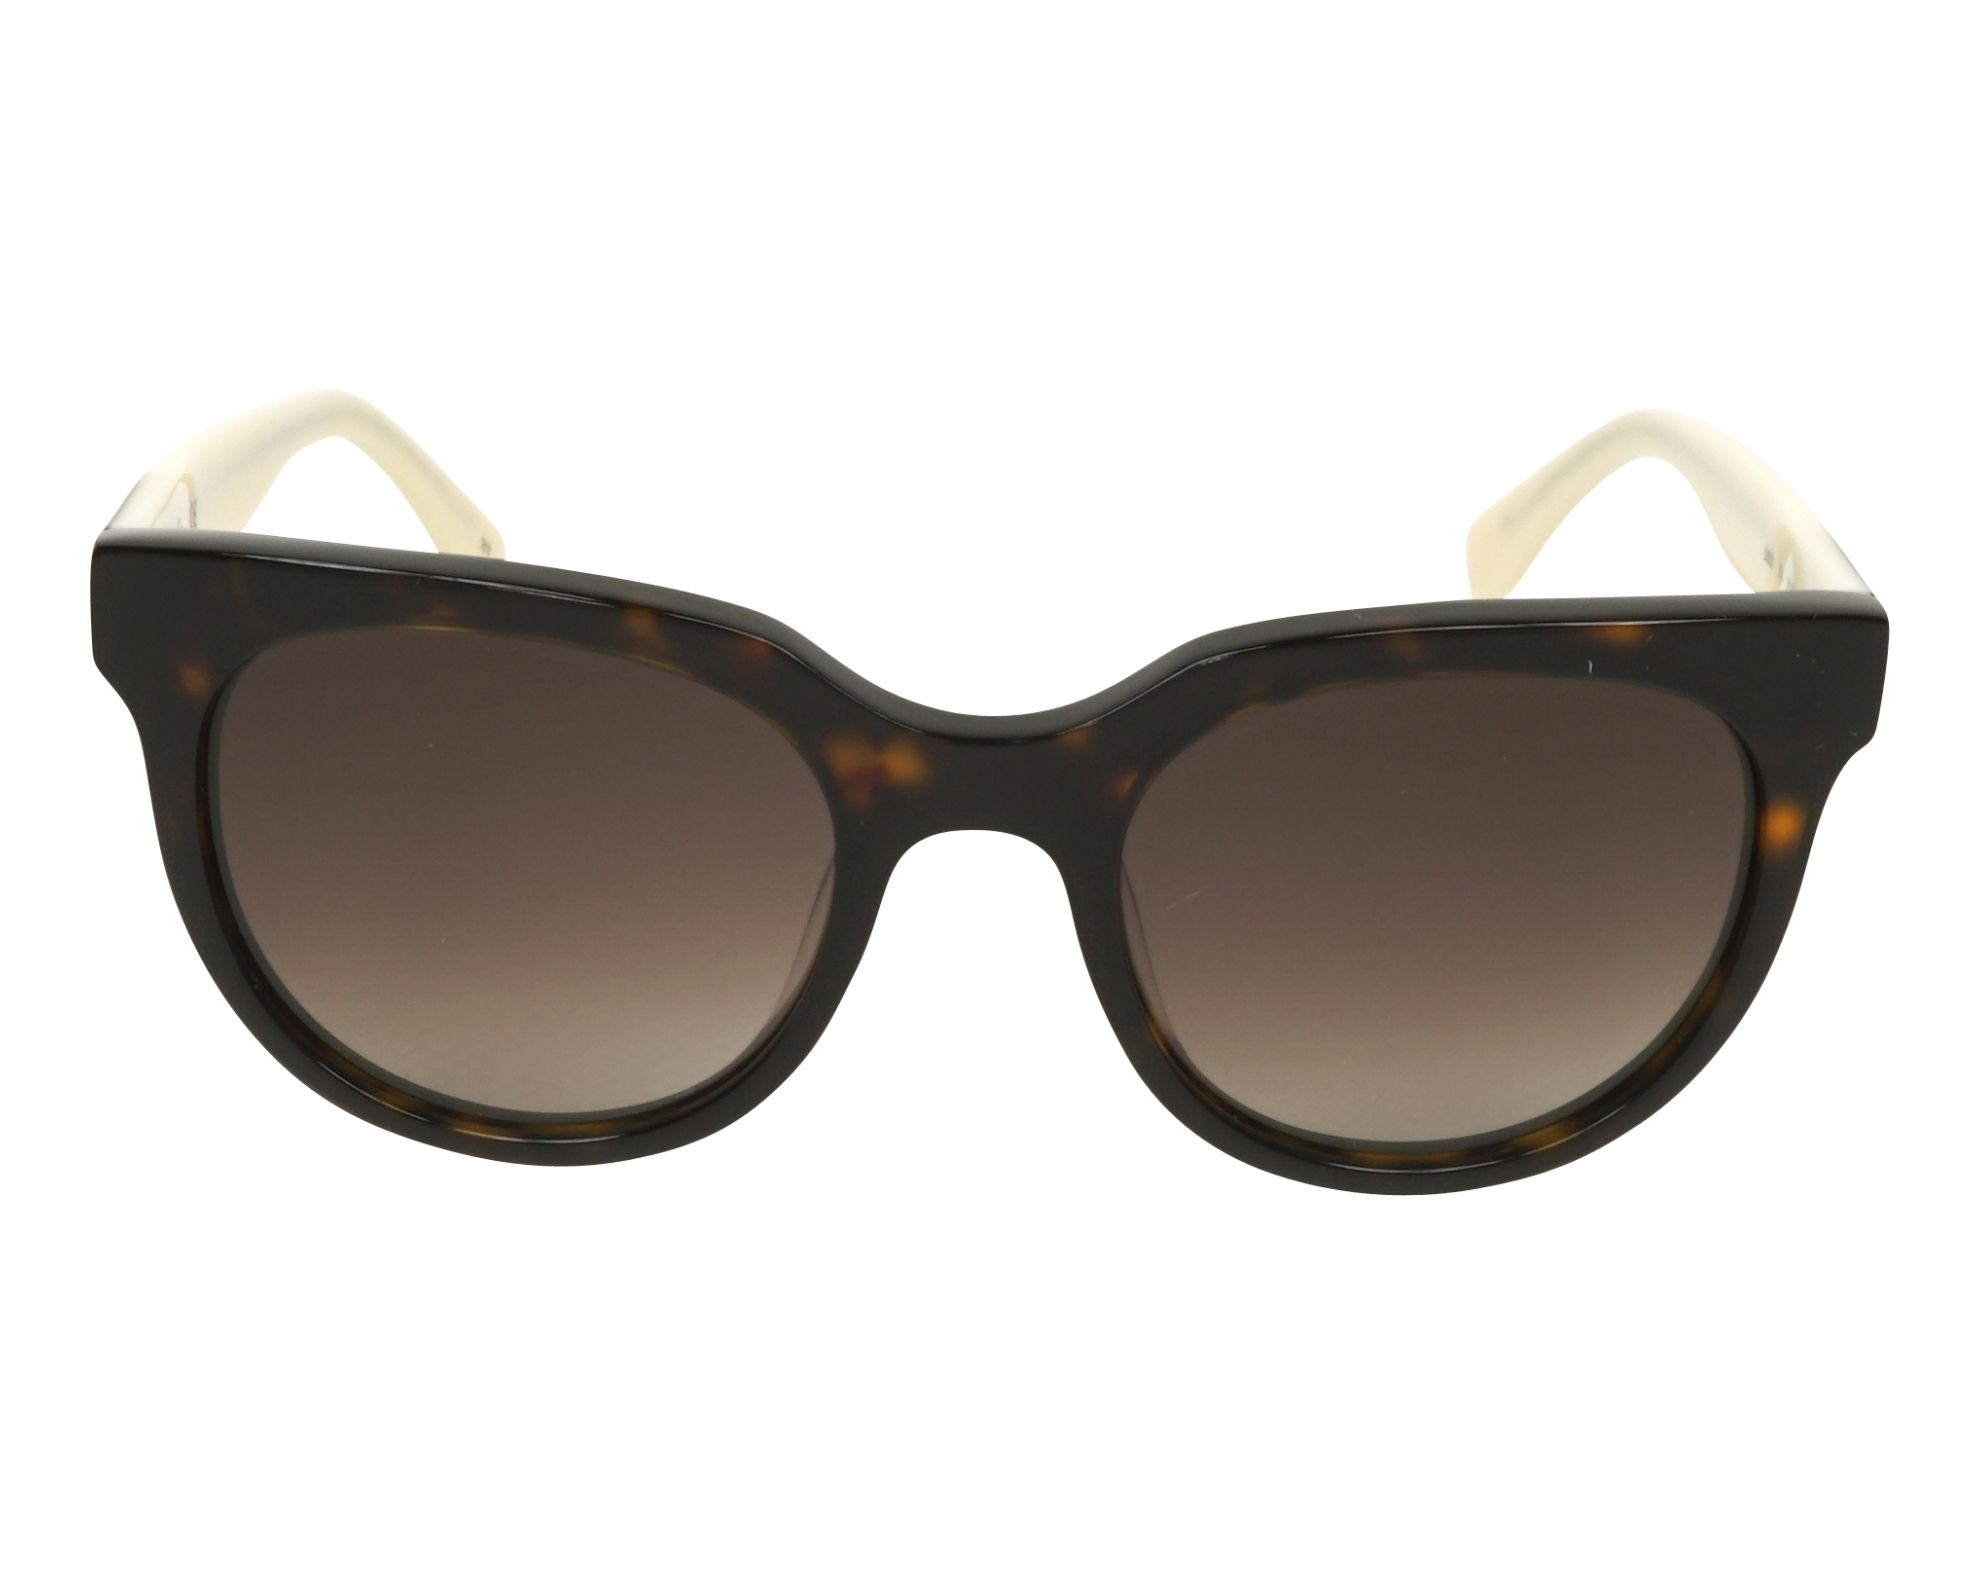 Lacoste L850S 214 51 mm/20 mm HwLmMpo